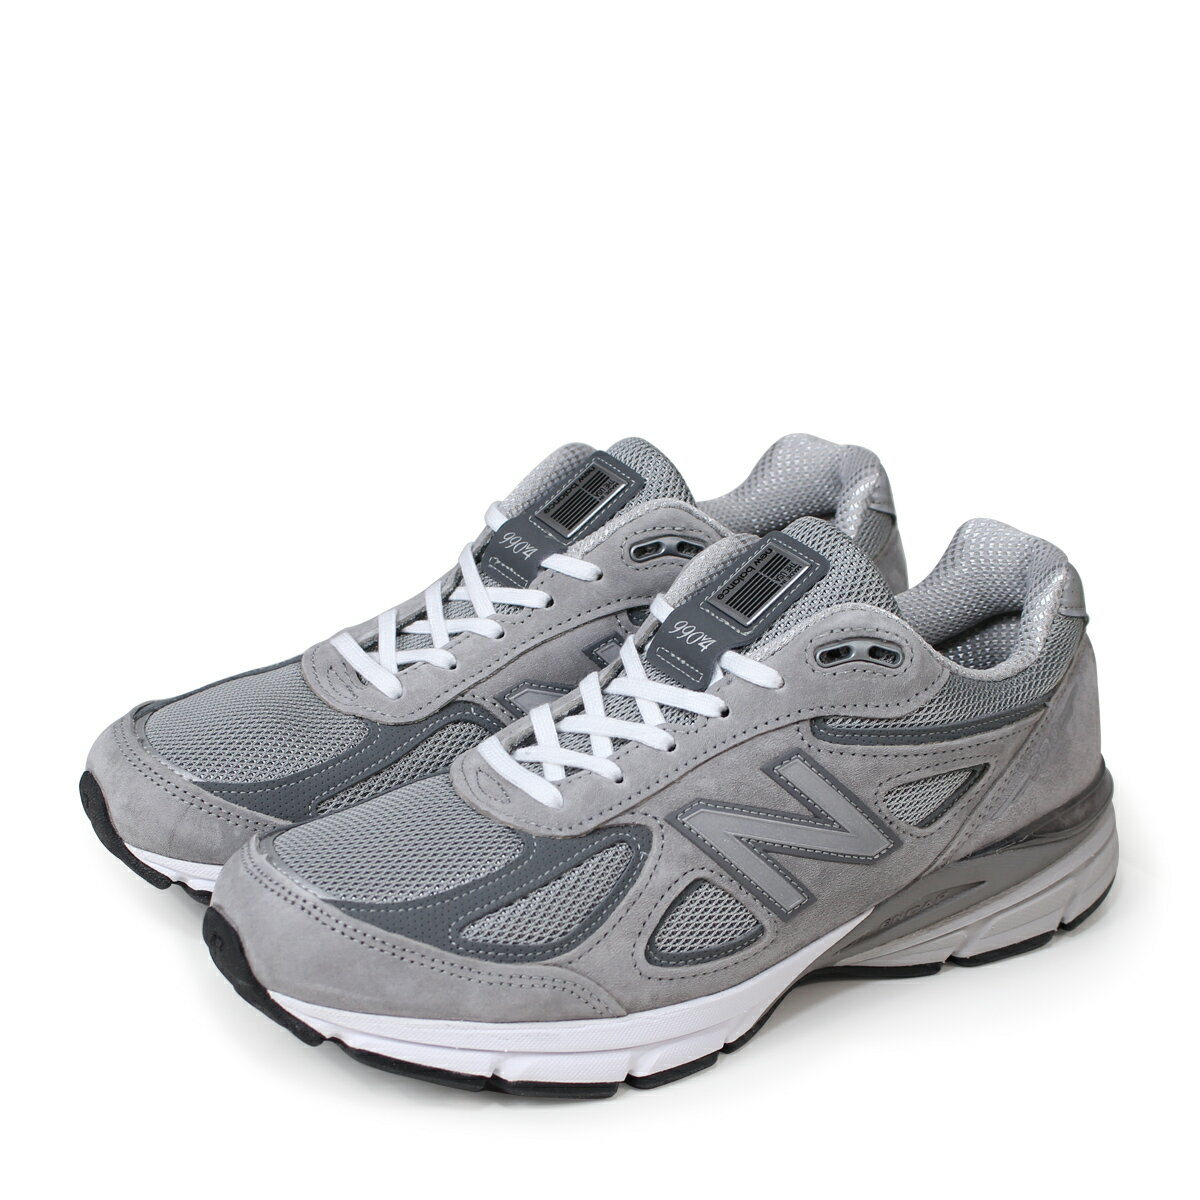 half off 1f323 66a1c new balance 990 New Balance sneakers men D Wise gray M990GL4 [193]